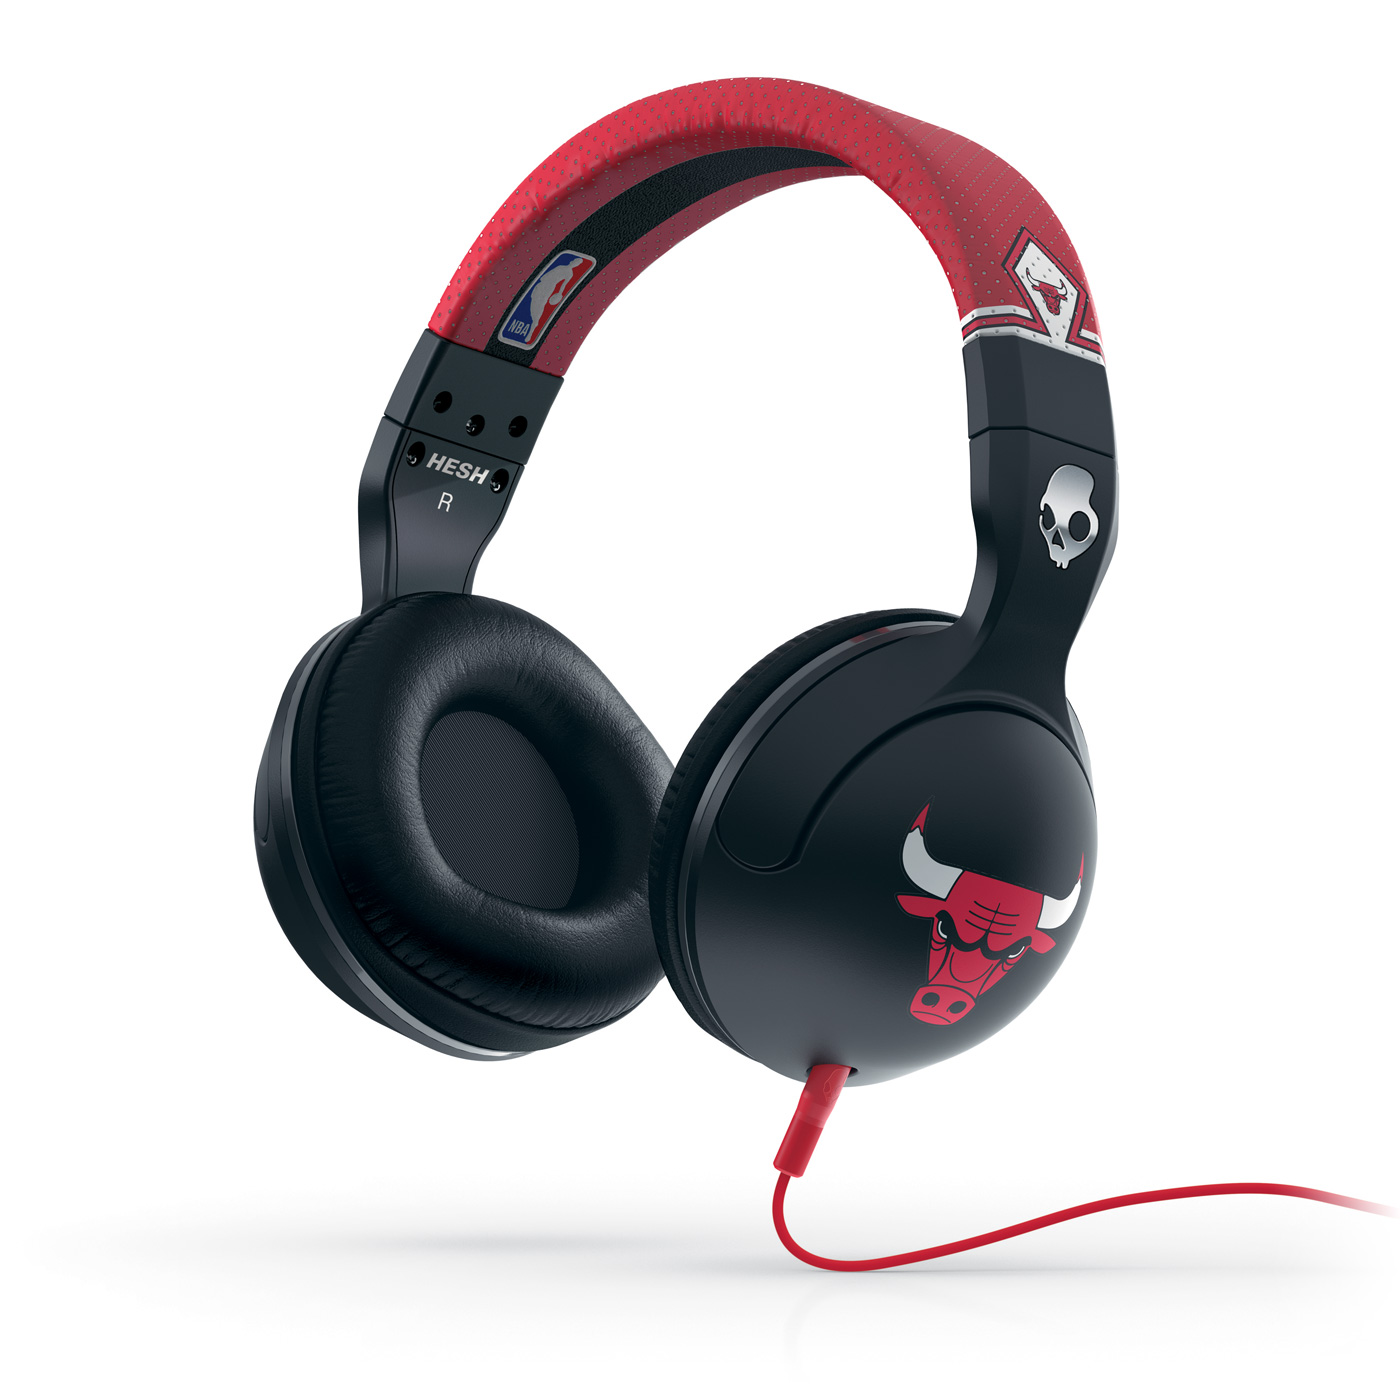 Skullcandy Skullcandy Headphones. Skullcandy. Skullcandy Skullcandy Headphones. Showing 17 of 19 results that match your query. Search Product Result. Product - Skullcandy XTFree Wireless Bluetooth Headphones (White) Product Image. Price $ Product Title.